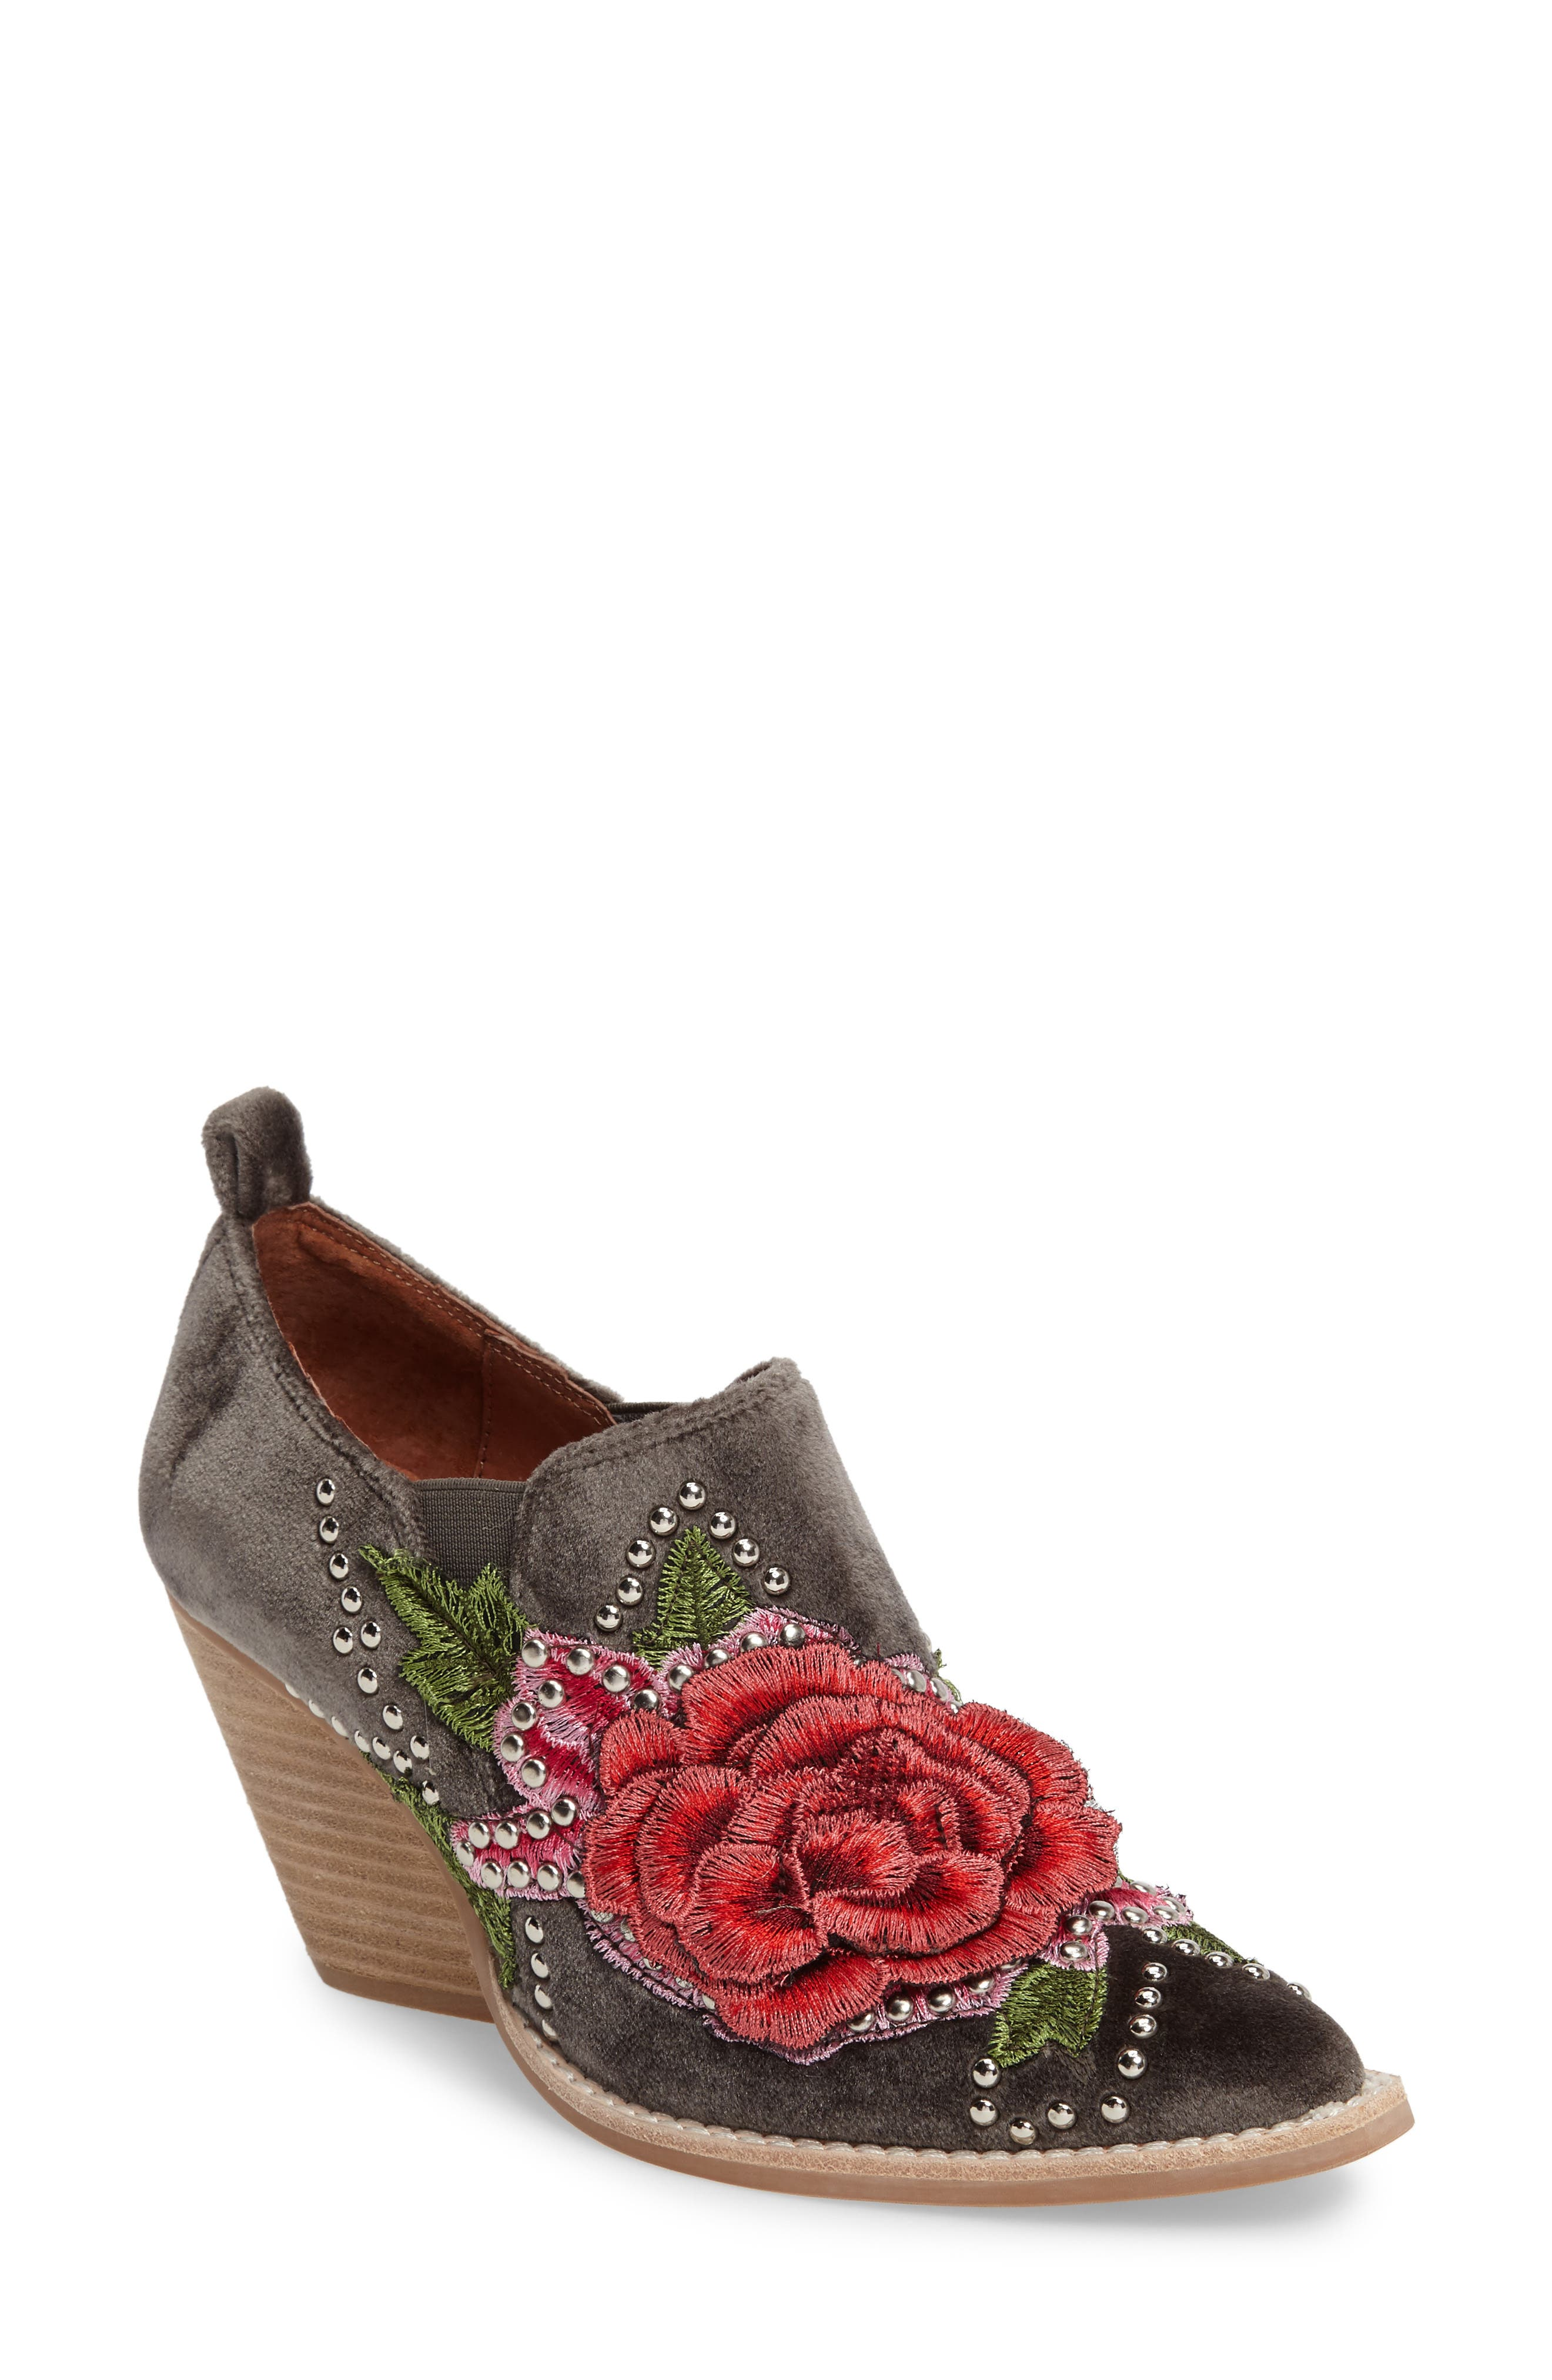 Main Image - Jeffrey Campbell Roseola Studded Appliqué Bootie (Women)